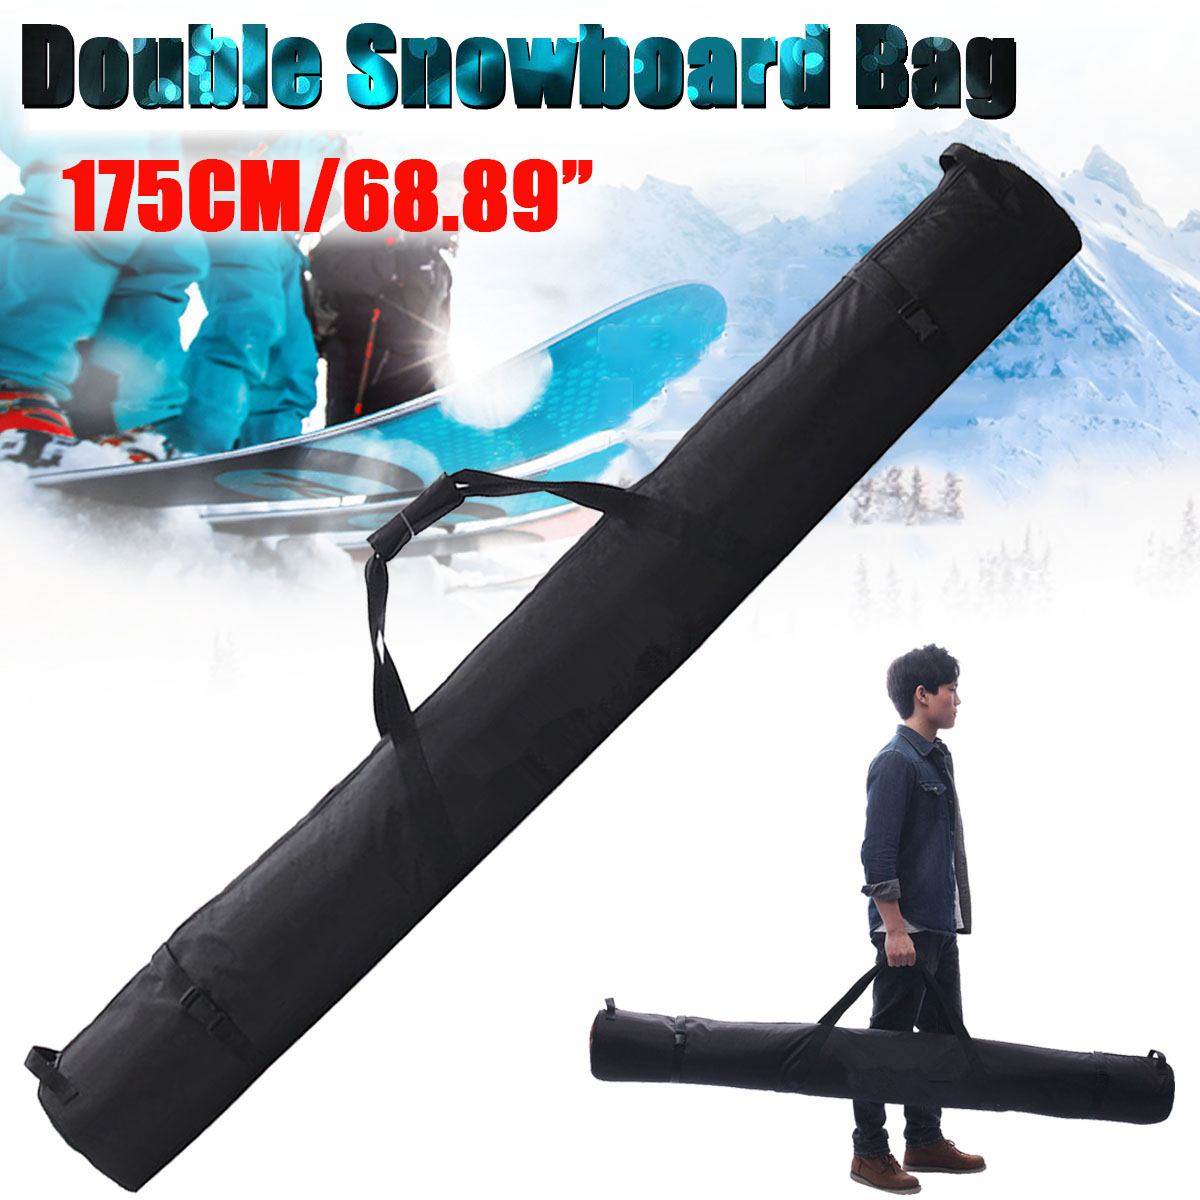 175cm/69 Inch Snowboard Skiing Bag for Double Snowboard in Polyester Sport Snowboard Bag Ski Bag Snowboard Bag175cm/69 Inch Snowboard Skiing Bag for Double Snowboard in Polyester Sport Snowboard Bag Ski Bag Snowboard Bag